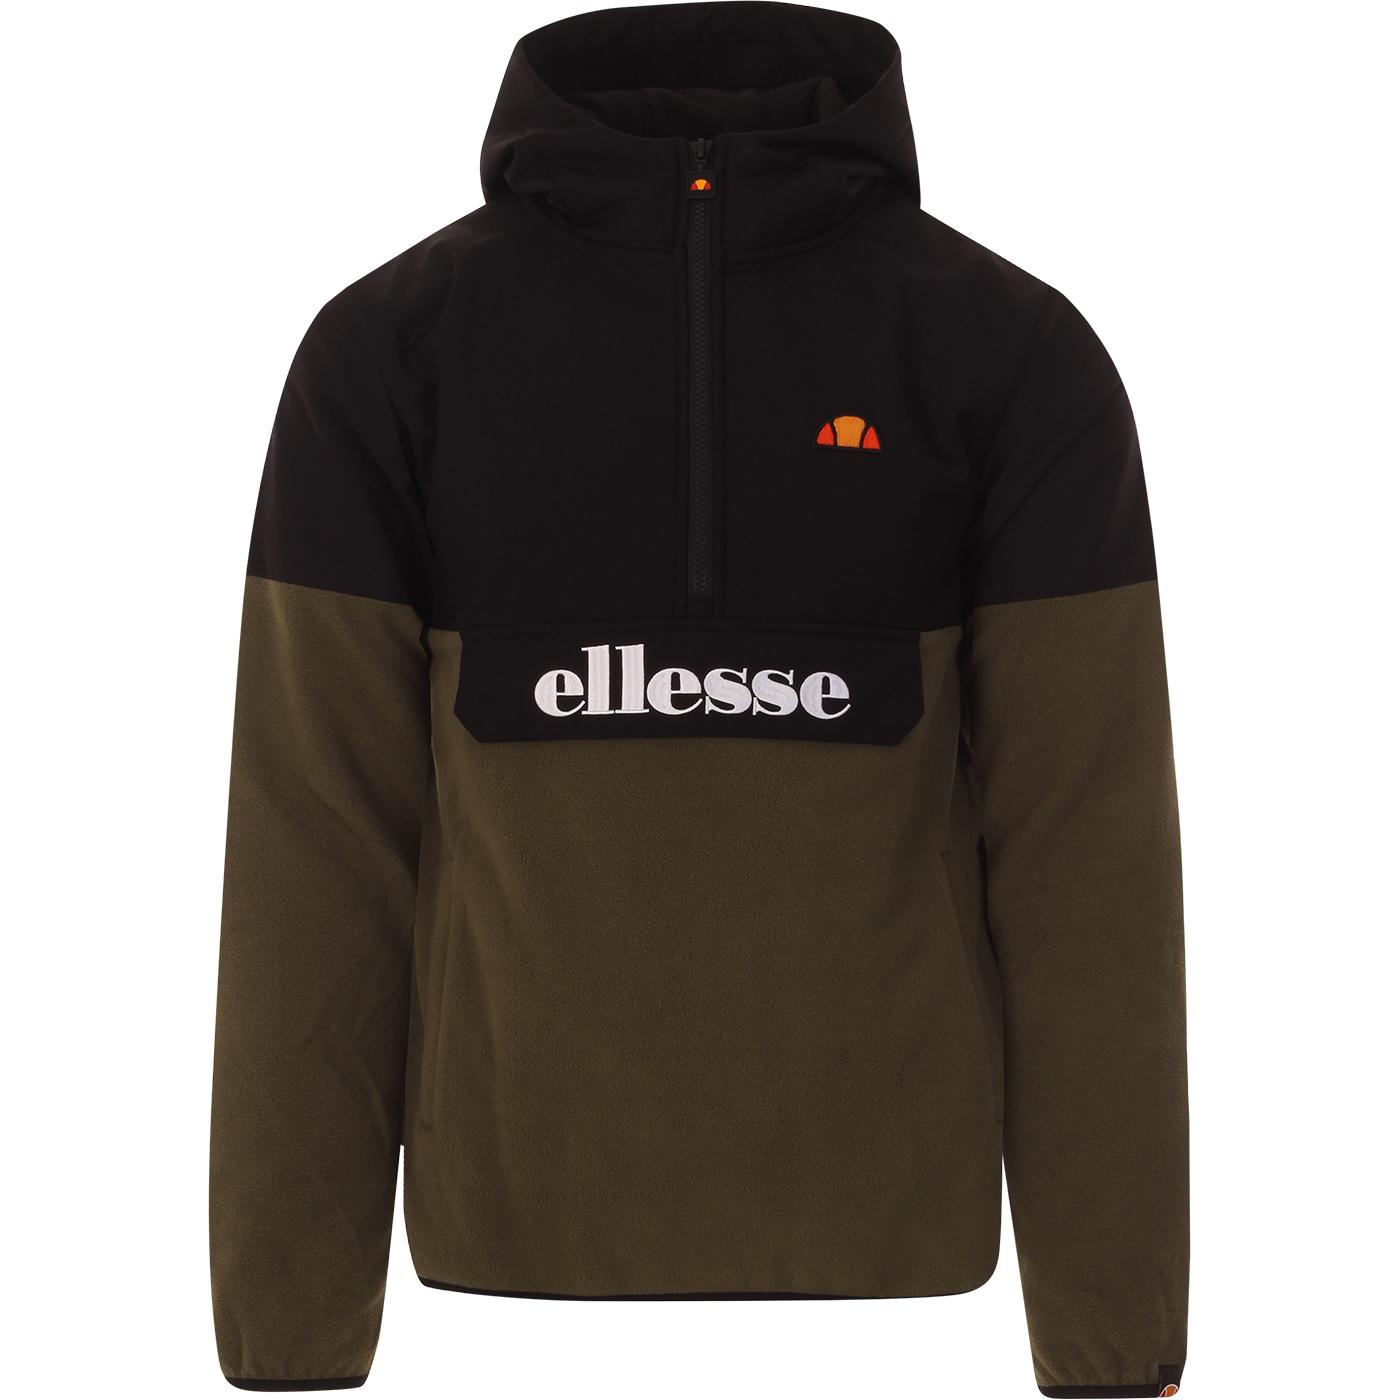 Freccia ELLESSE Retro Fleece Panel OH Jacket (B/K)